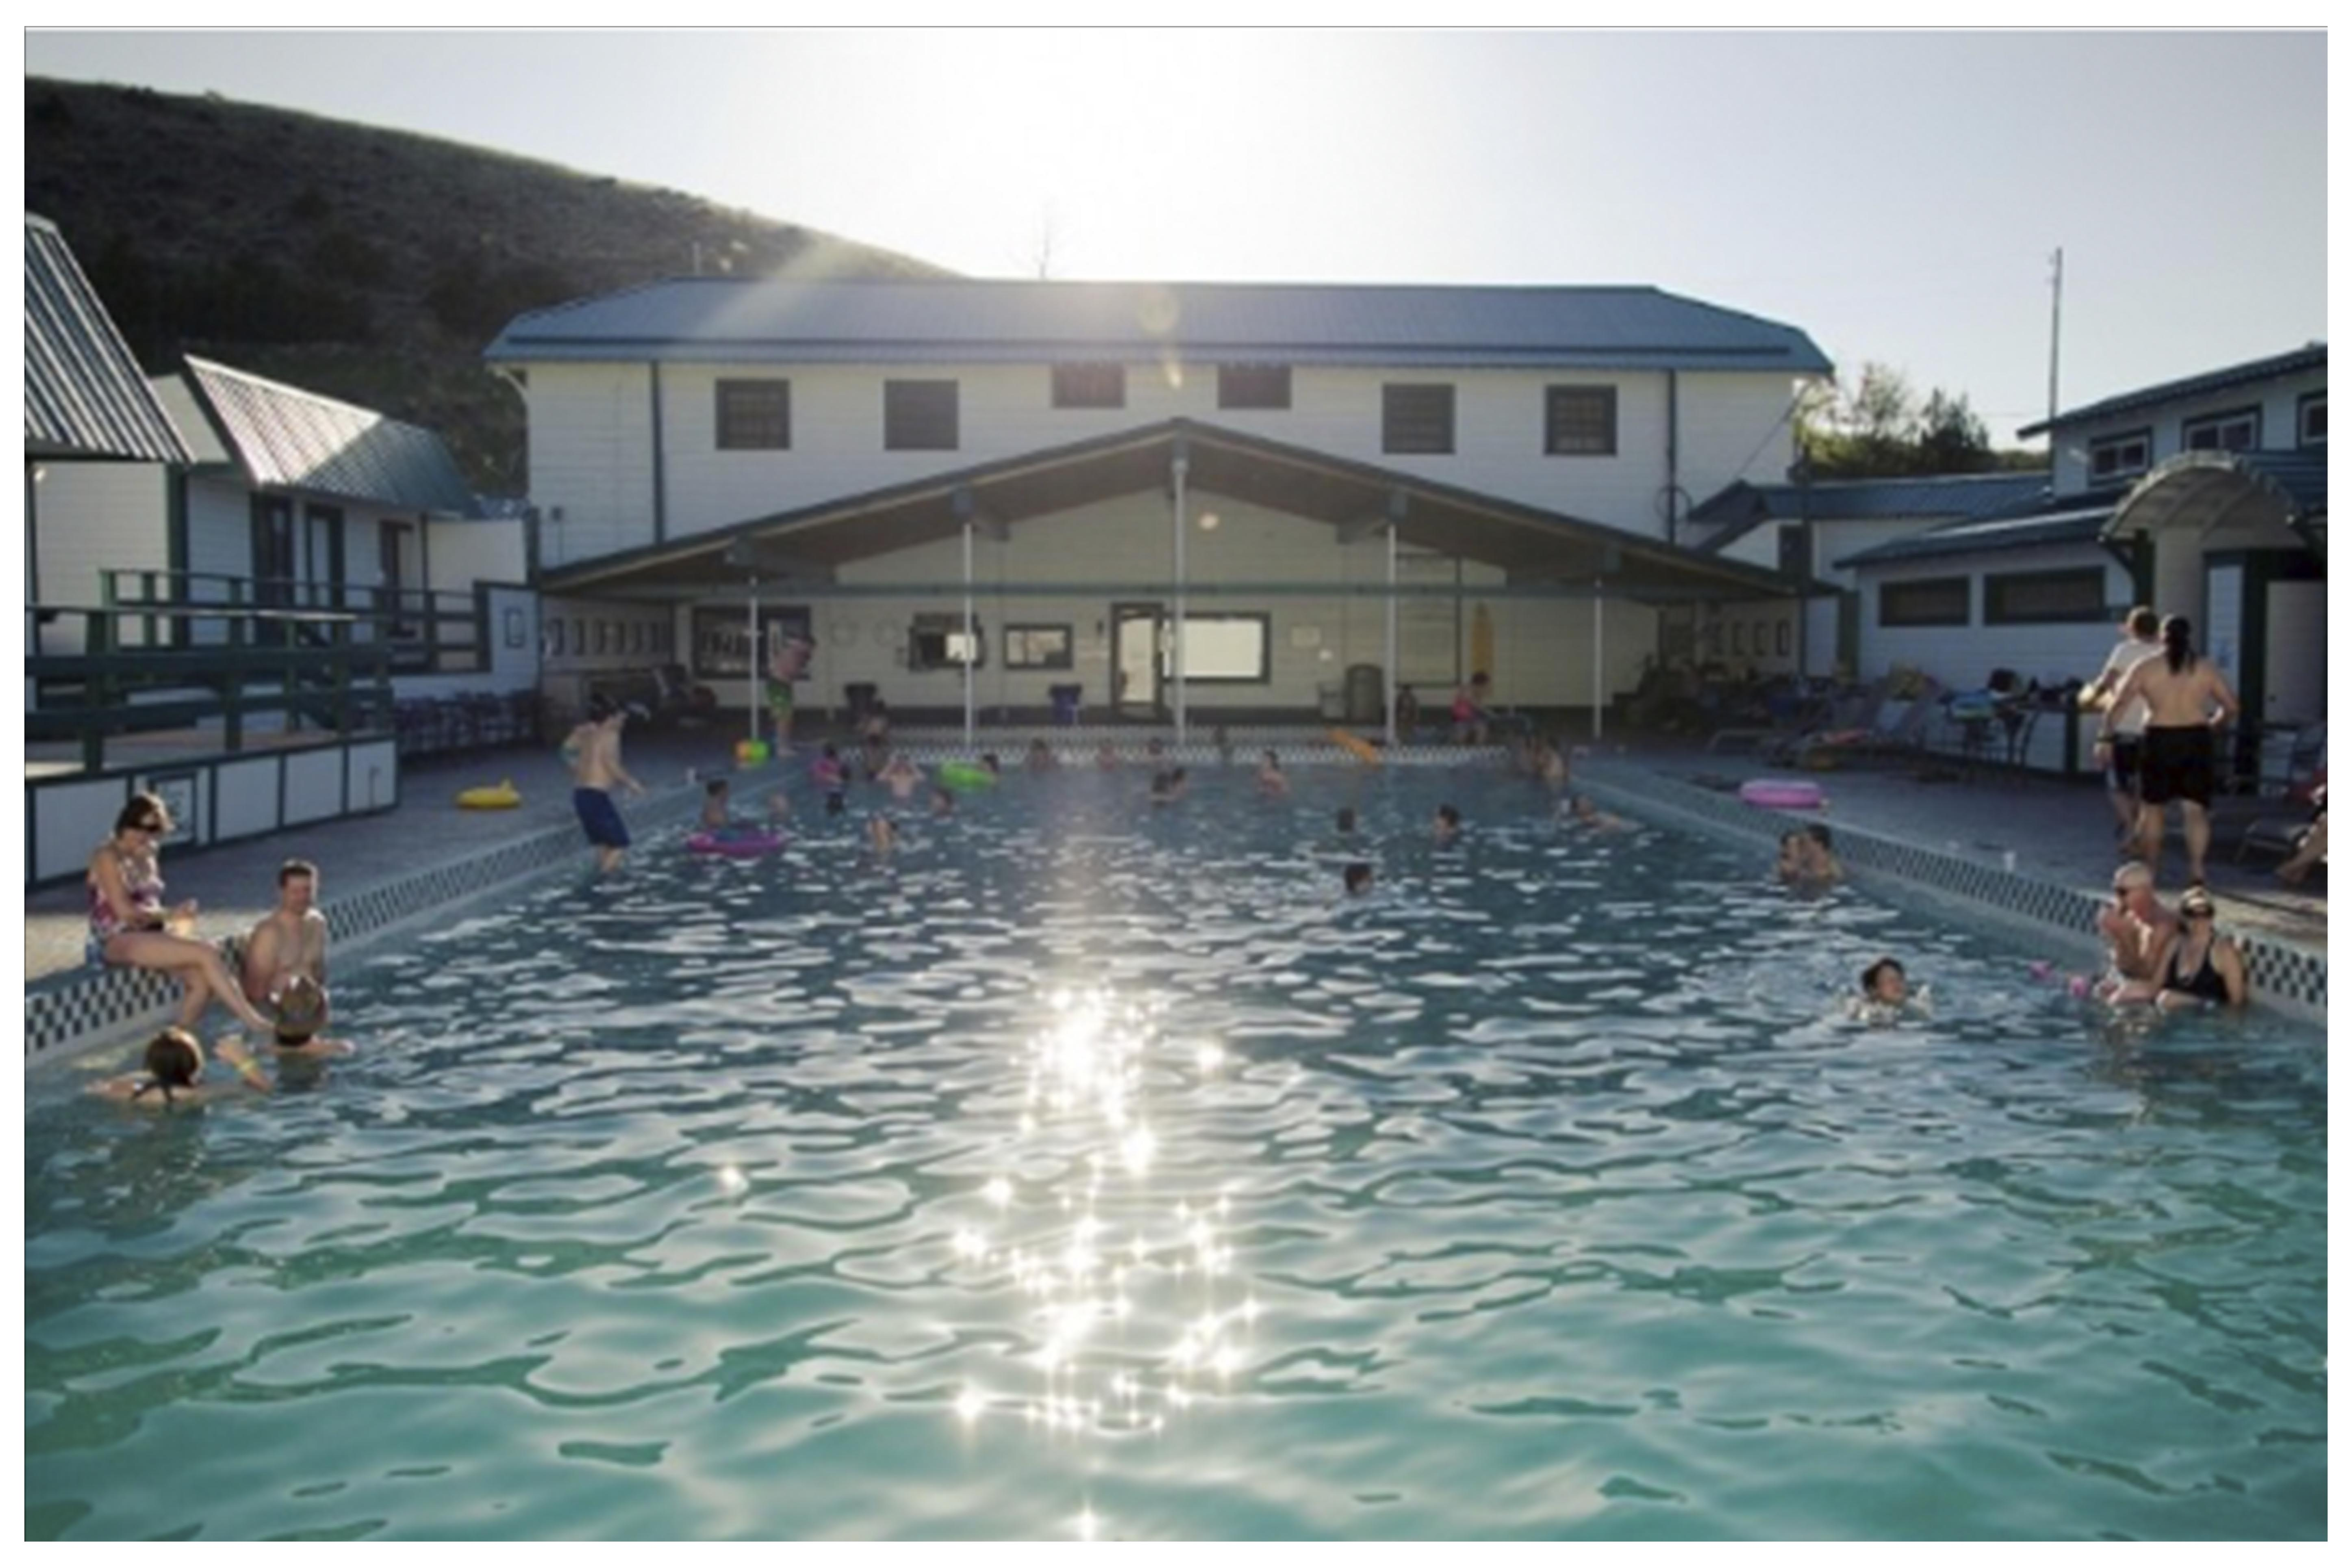 CVB_Hotsprings-2020-5_c